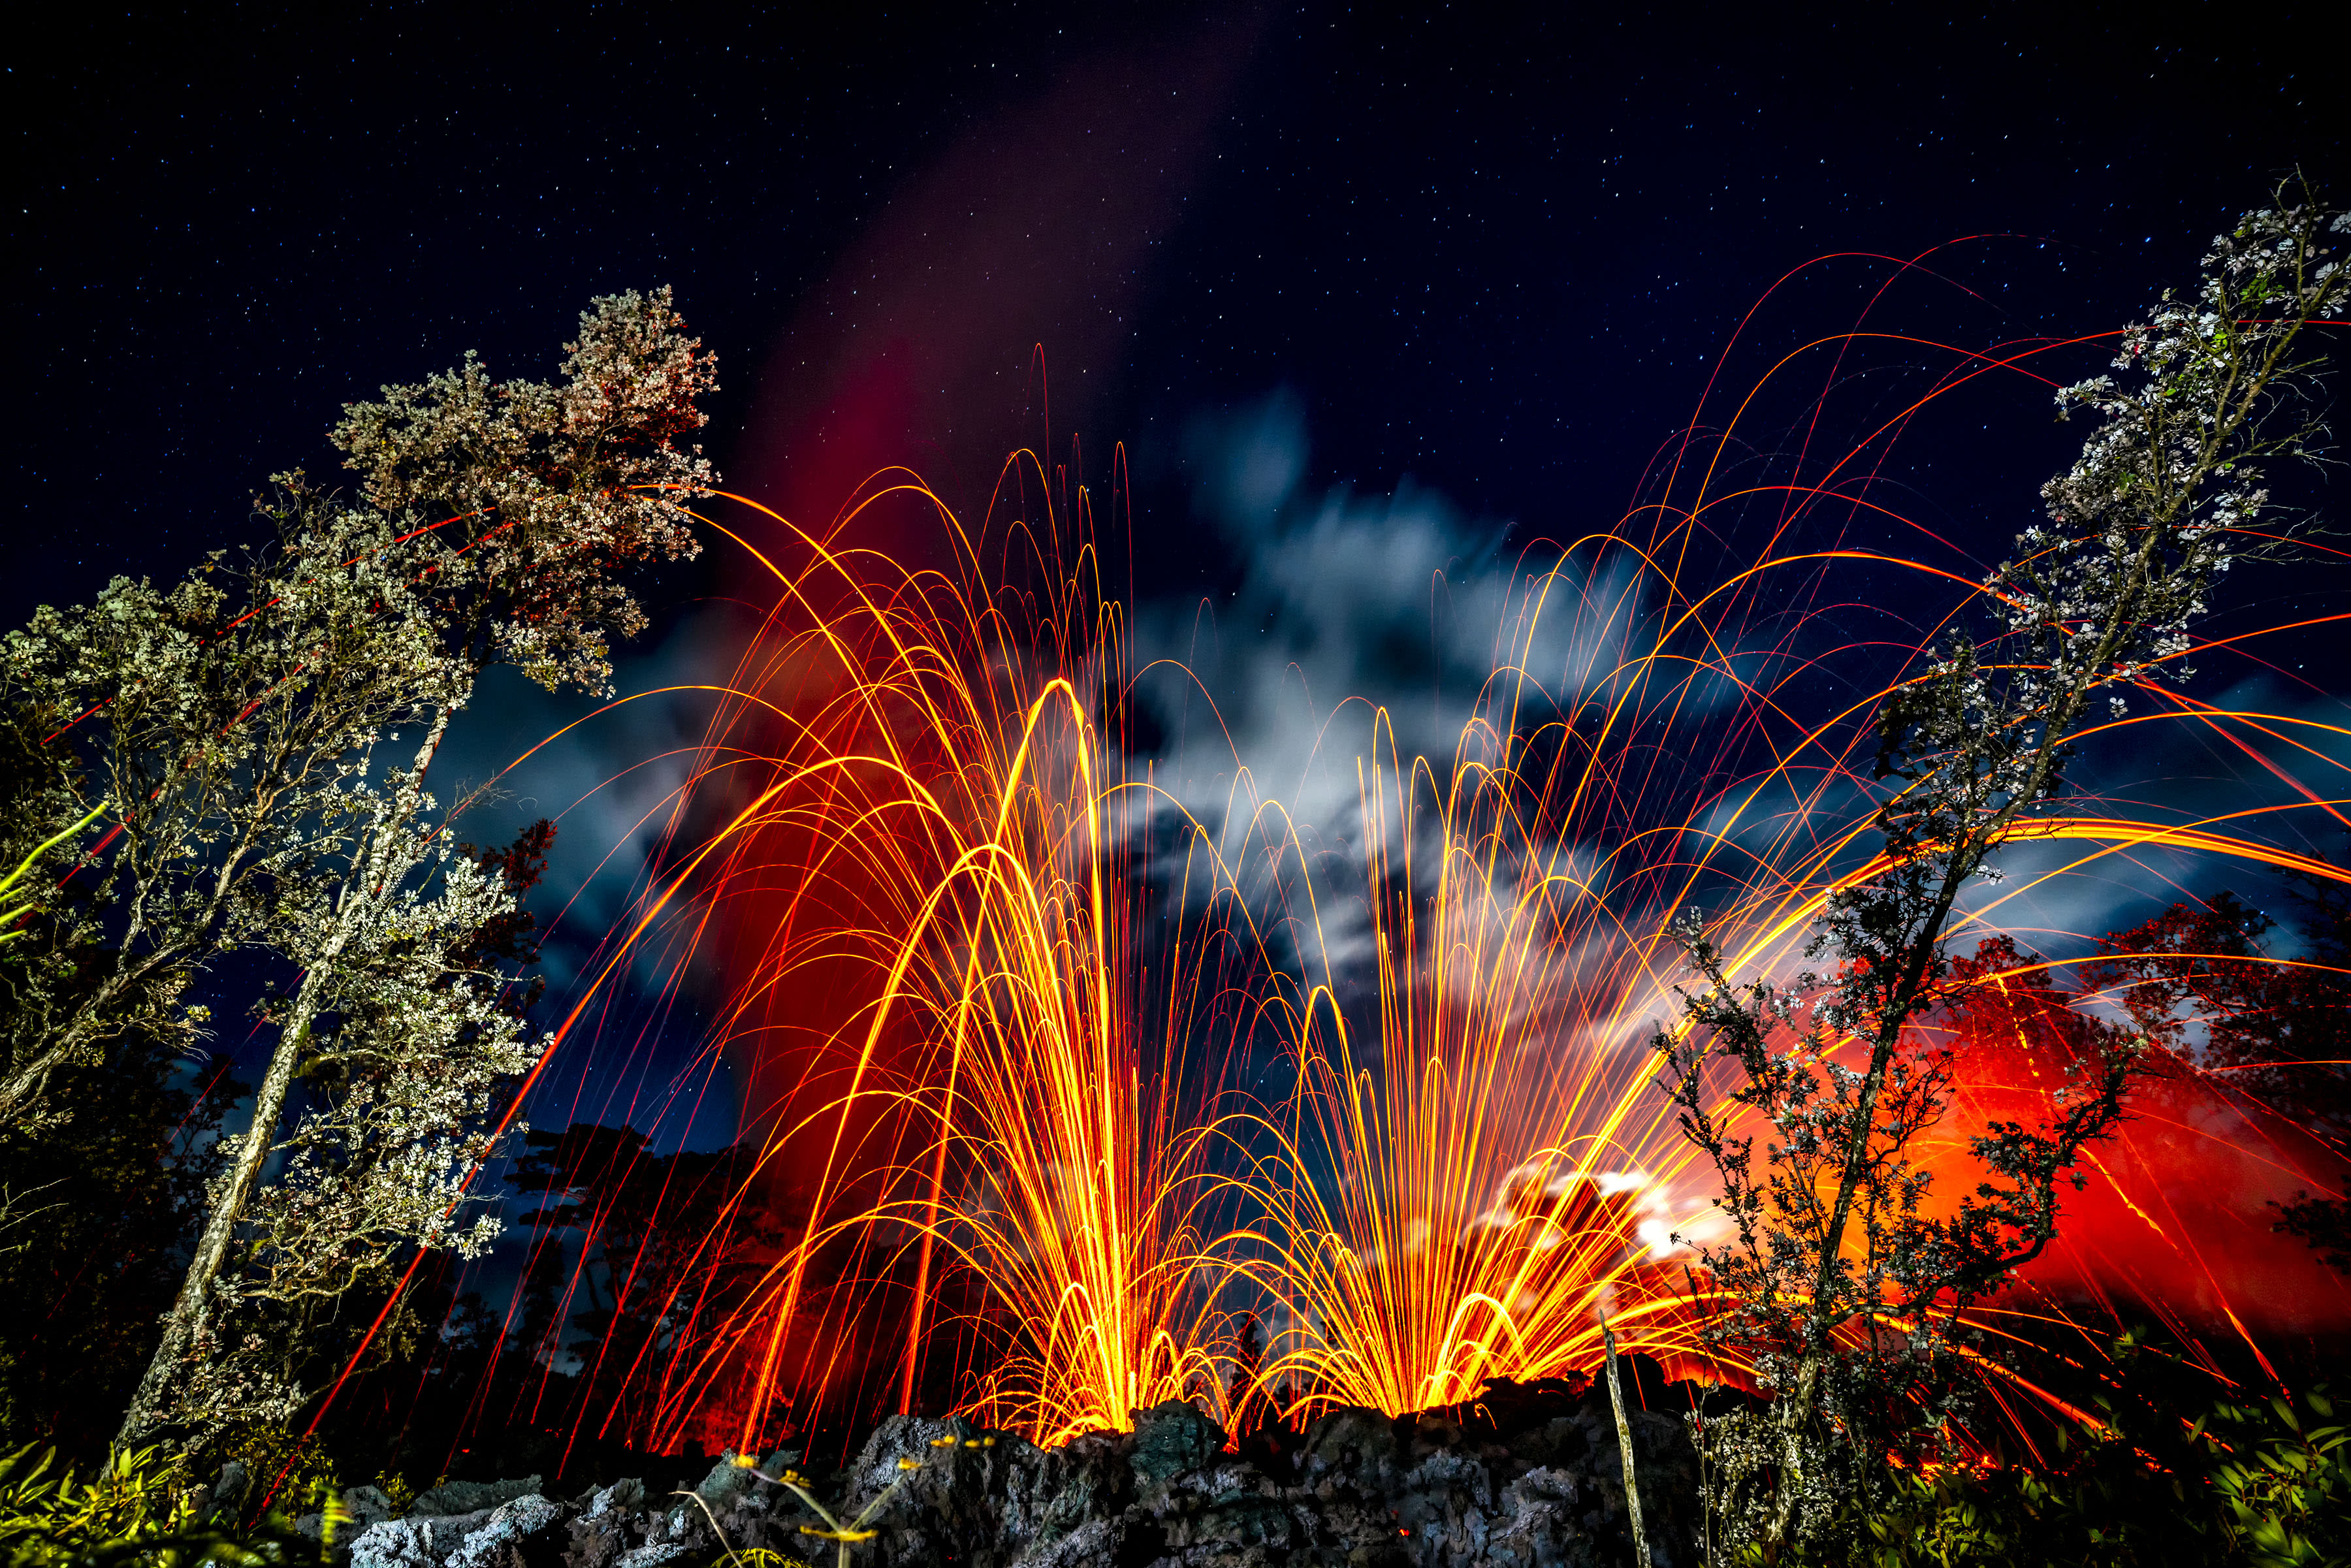 <p>These beautiful images aim to show the more artistic side of Hawaii's recent volcano eruption. (Photo: CJ Kale/Caters News) </p>